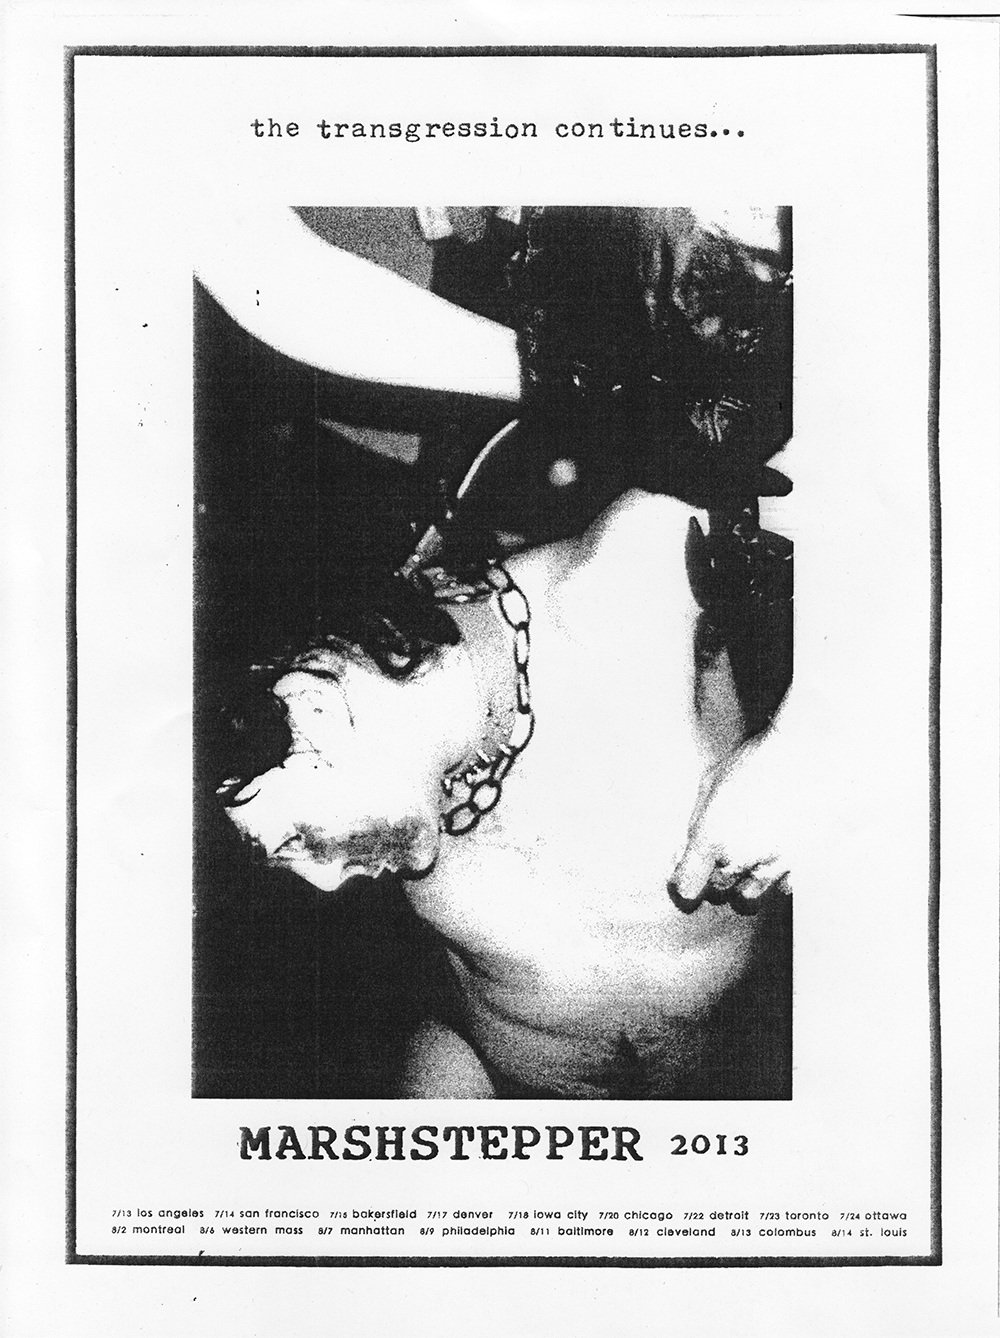 marshstepper_transgression_1000.jpg